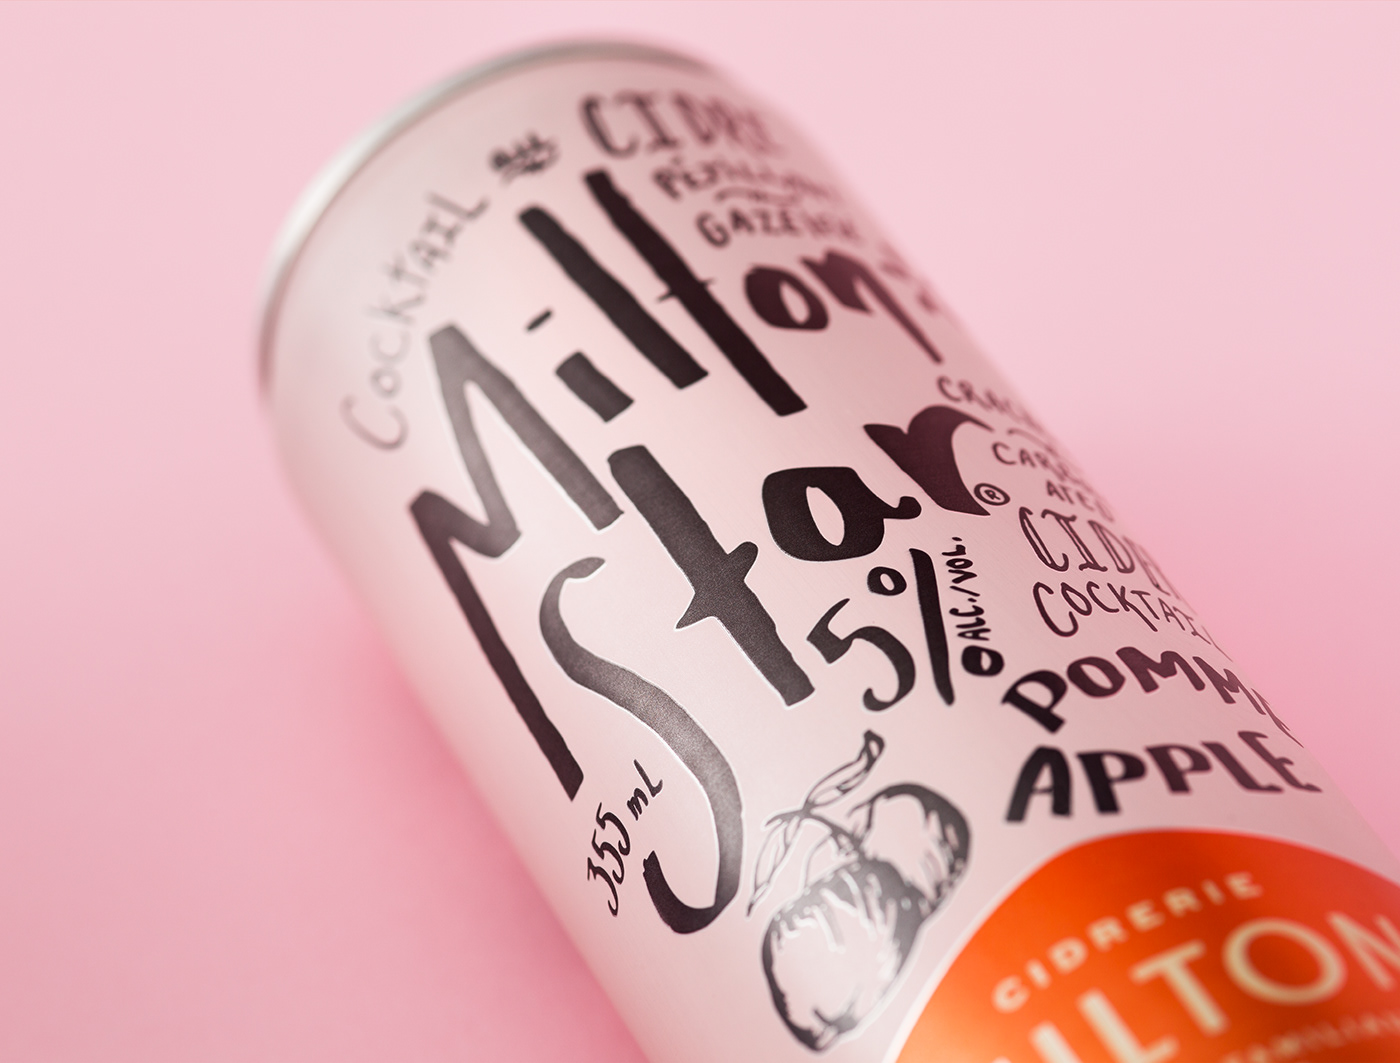 Apple or Grapefruit Artisan Sparkling Ciders / World Brand & Packaging Design Society